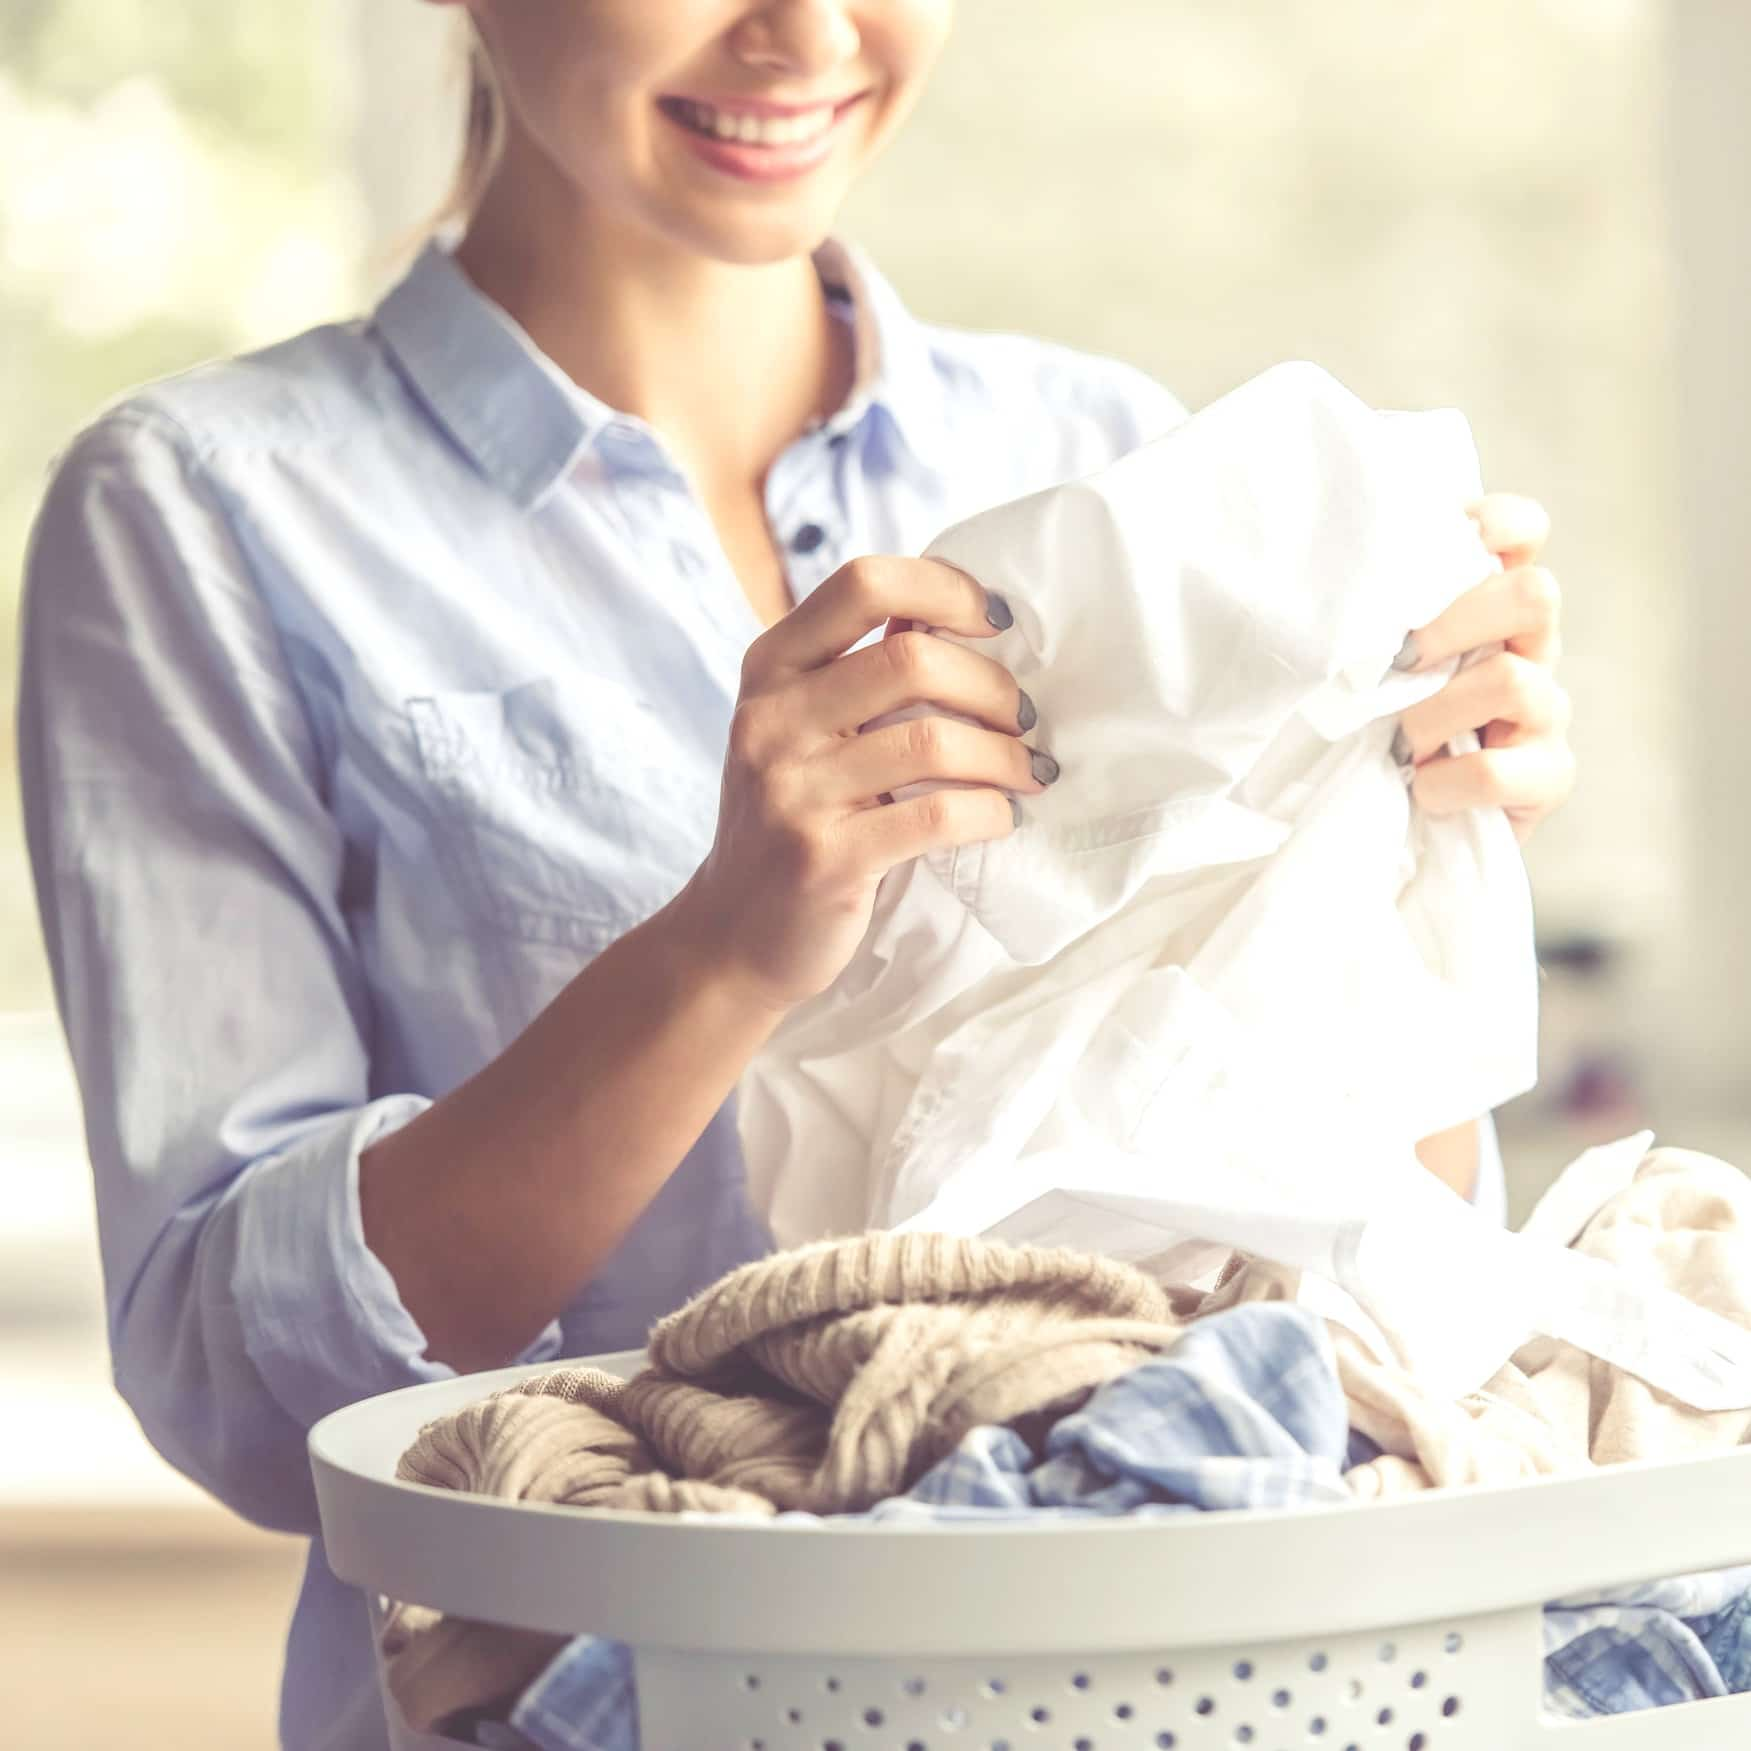 Don't miss these 10 smart ways to tame that laundry pile and take back your sanity!